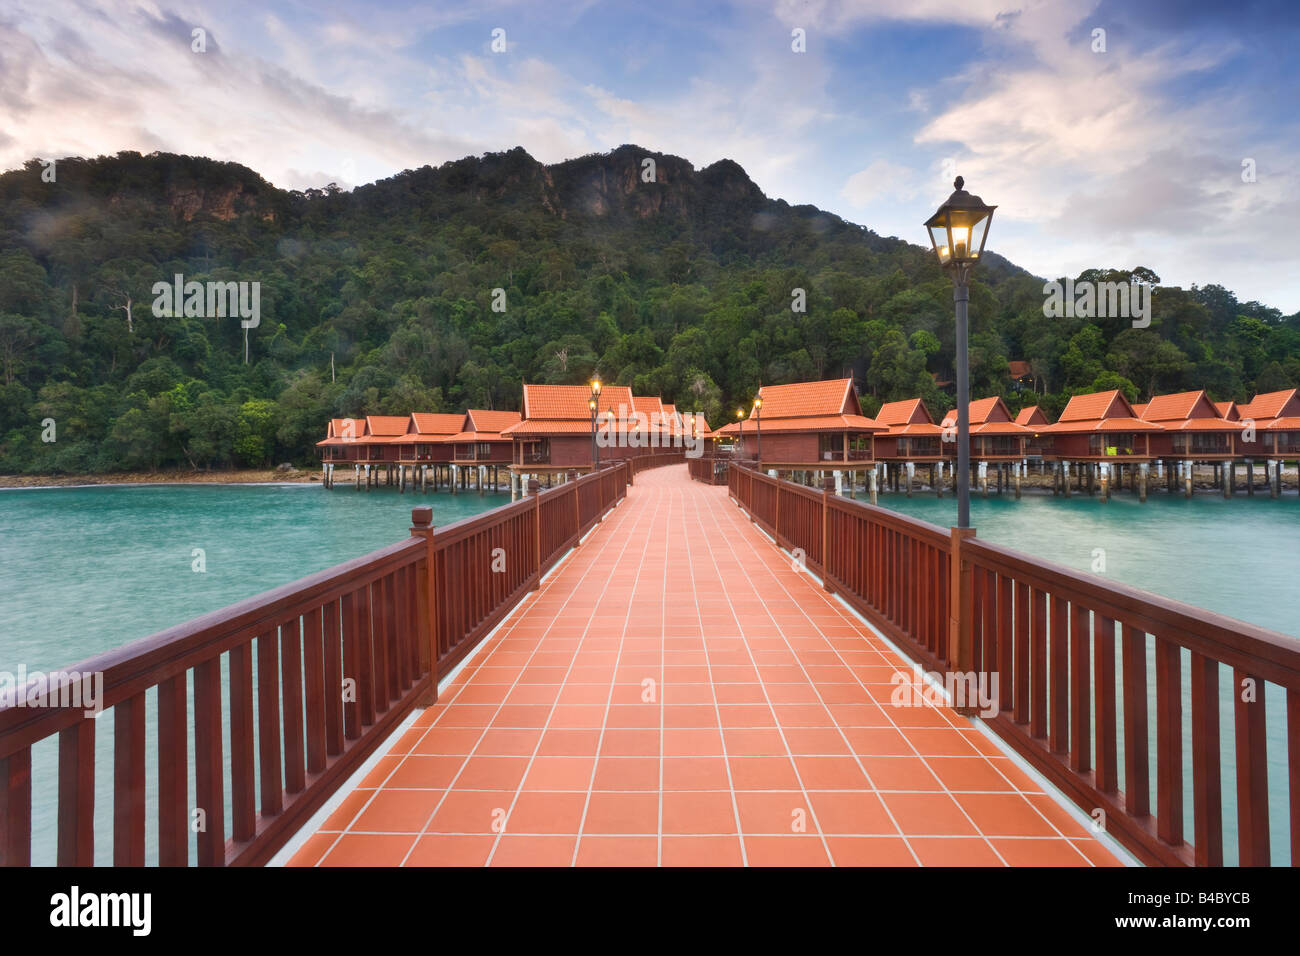 Asia, Malaysia, Langkawi Island, Pulau Langkawi, traditional style stilted houses and pier - Stock Image